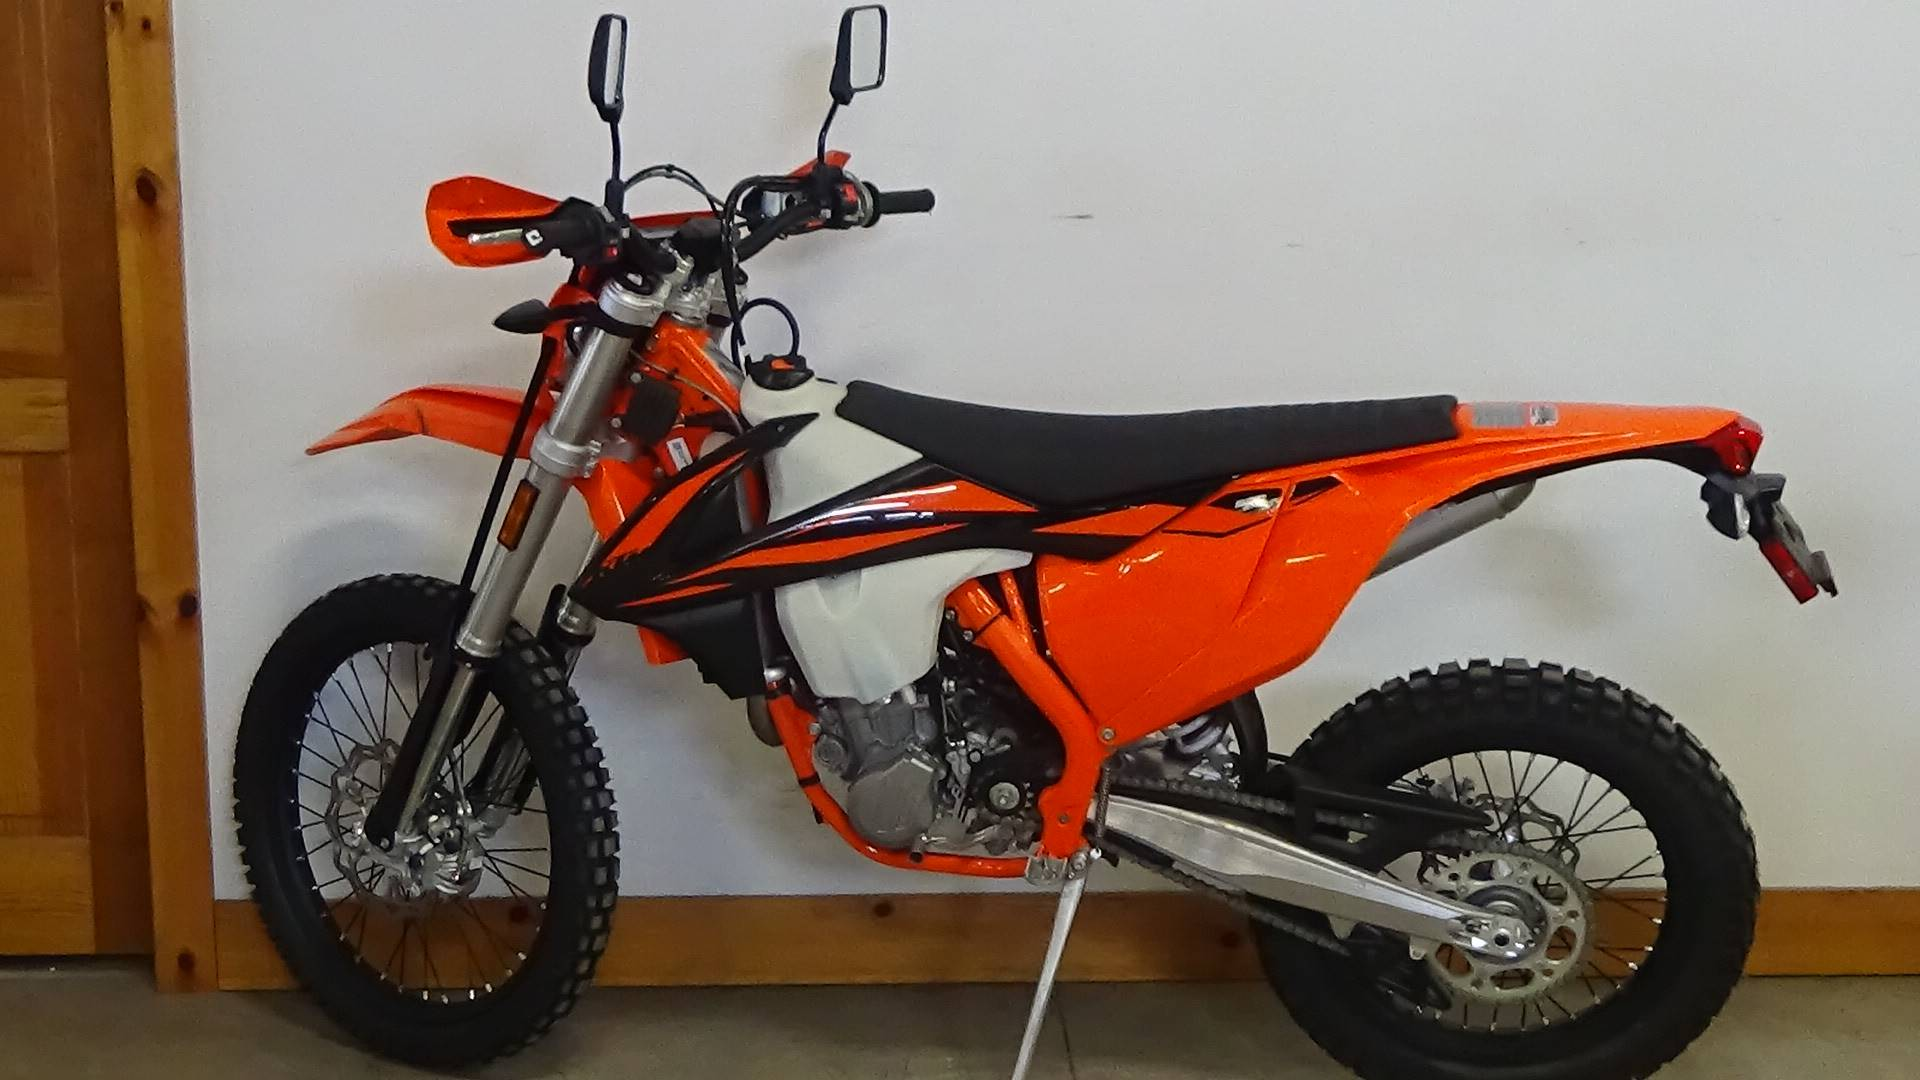 New 2019 KTM 500 EXC-F Motorcycles in Adams, MA | Stock Number: 421121